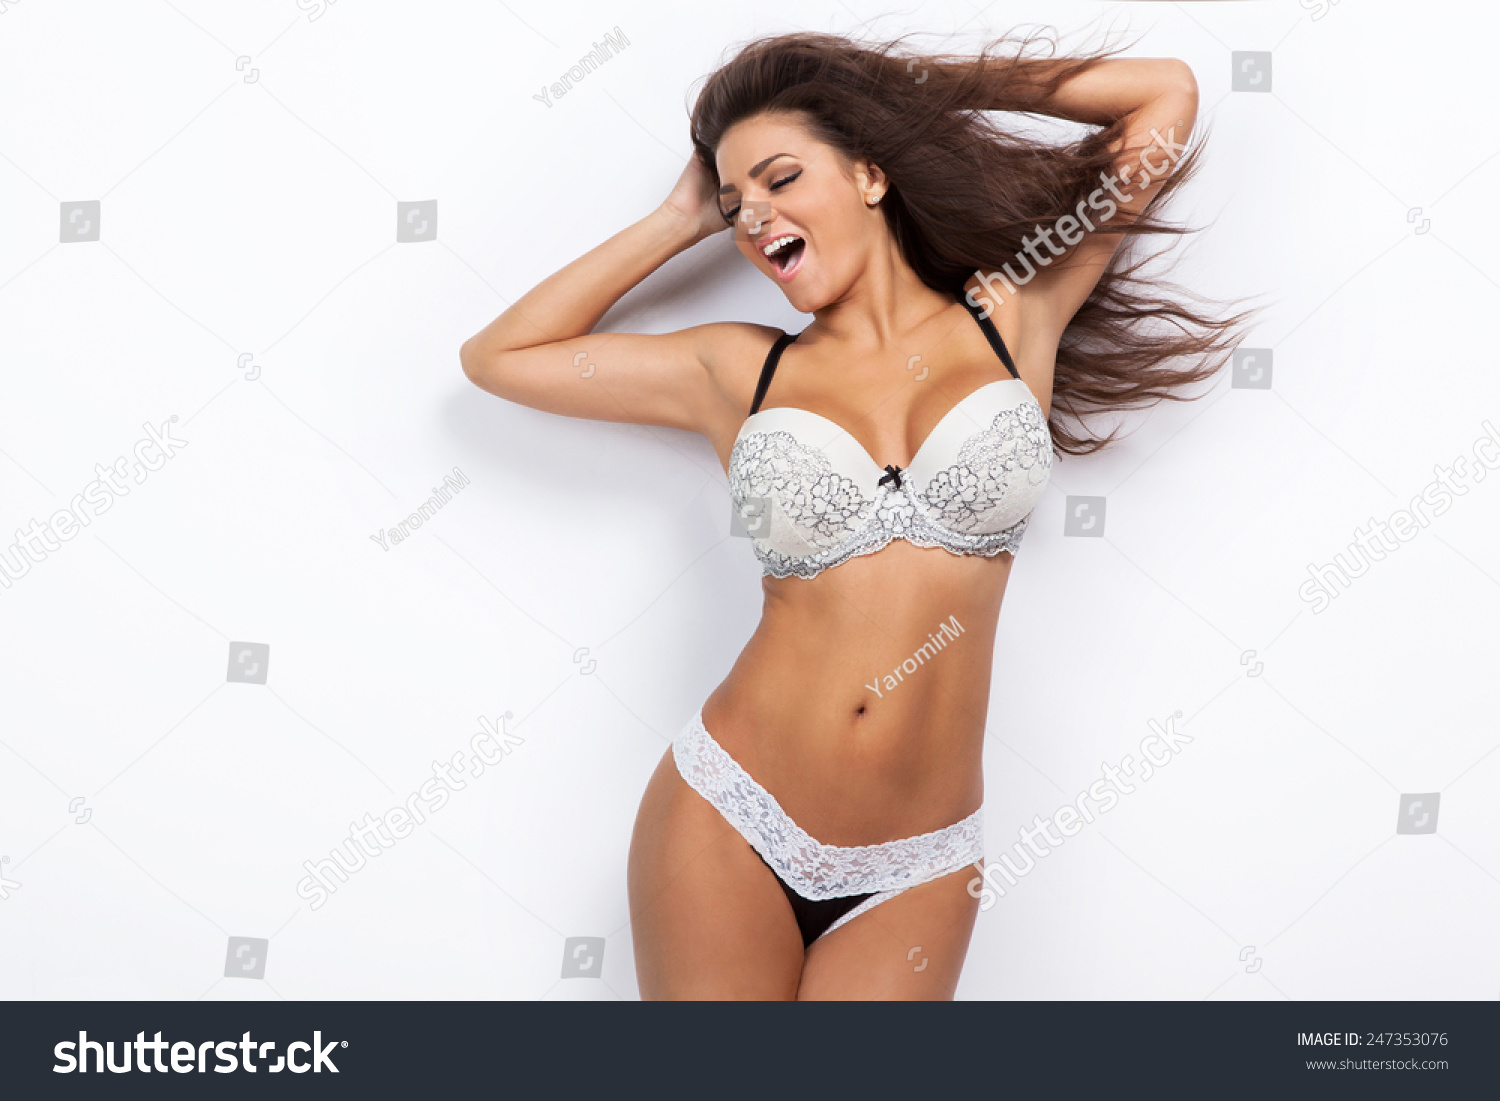 stock-photo-young-attractive-woman-posin